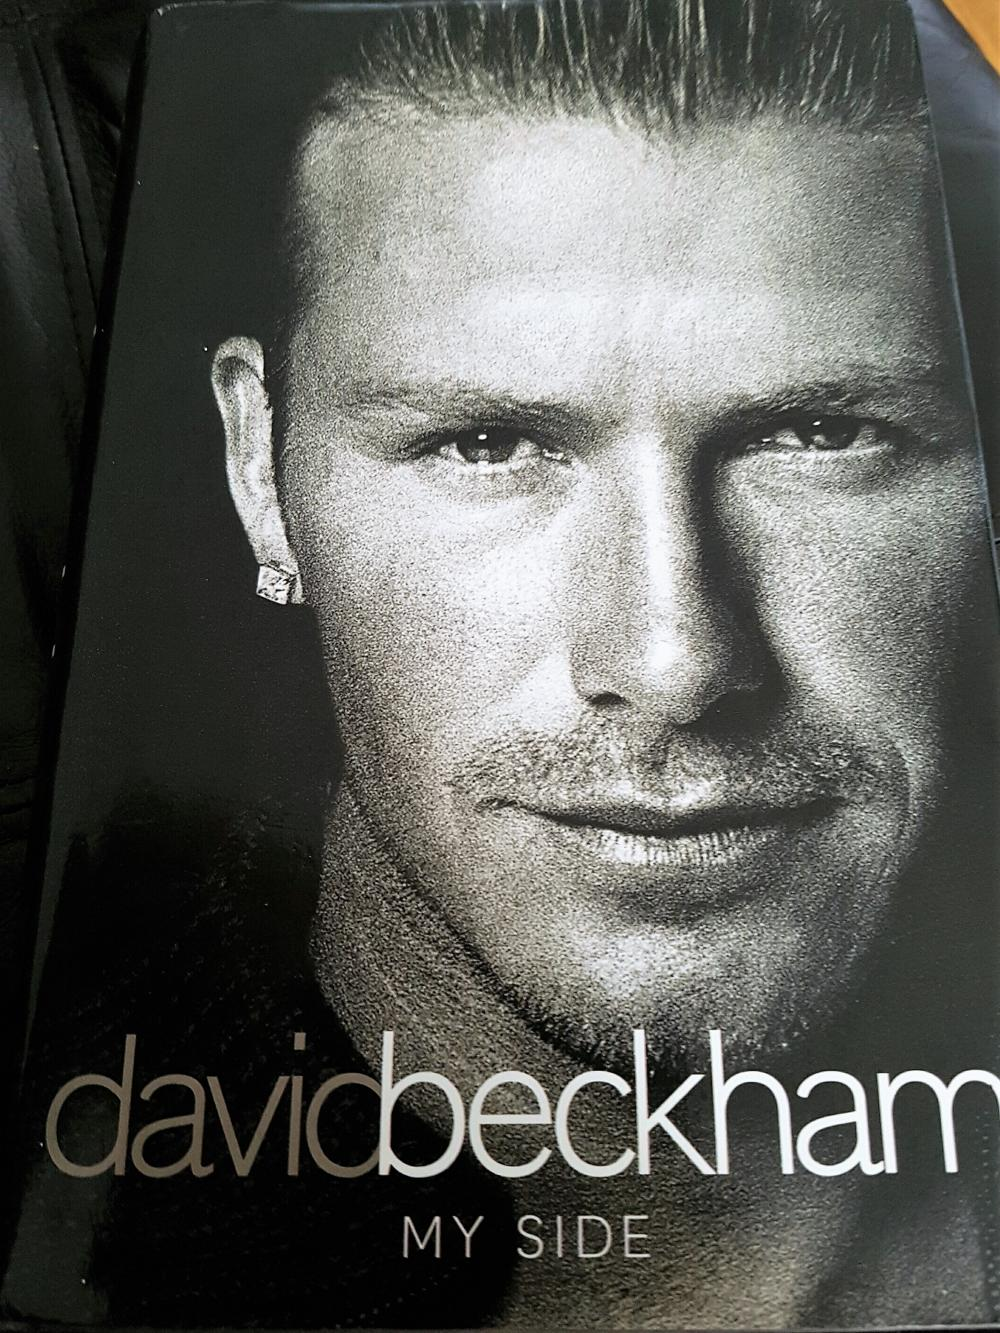 Lot 54 - David Robert Joseph Beckham, OBE born 2 May 1975 is an English former professional footballer. He played for Manchester United, Preston North End, Real Madrid, Milan, LA Galaxy, Paris Saint-Germain and the England national team